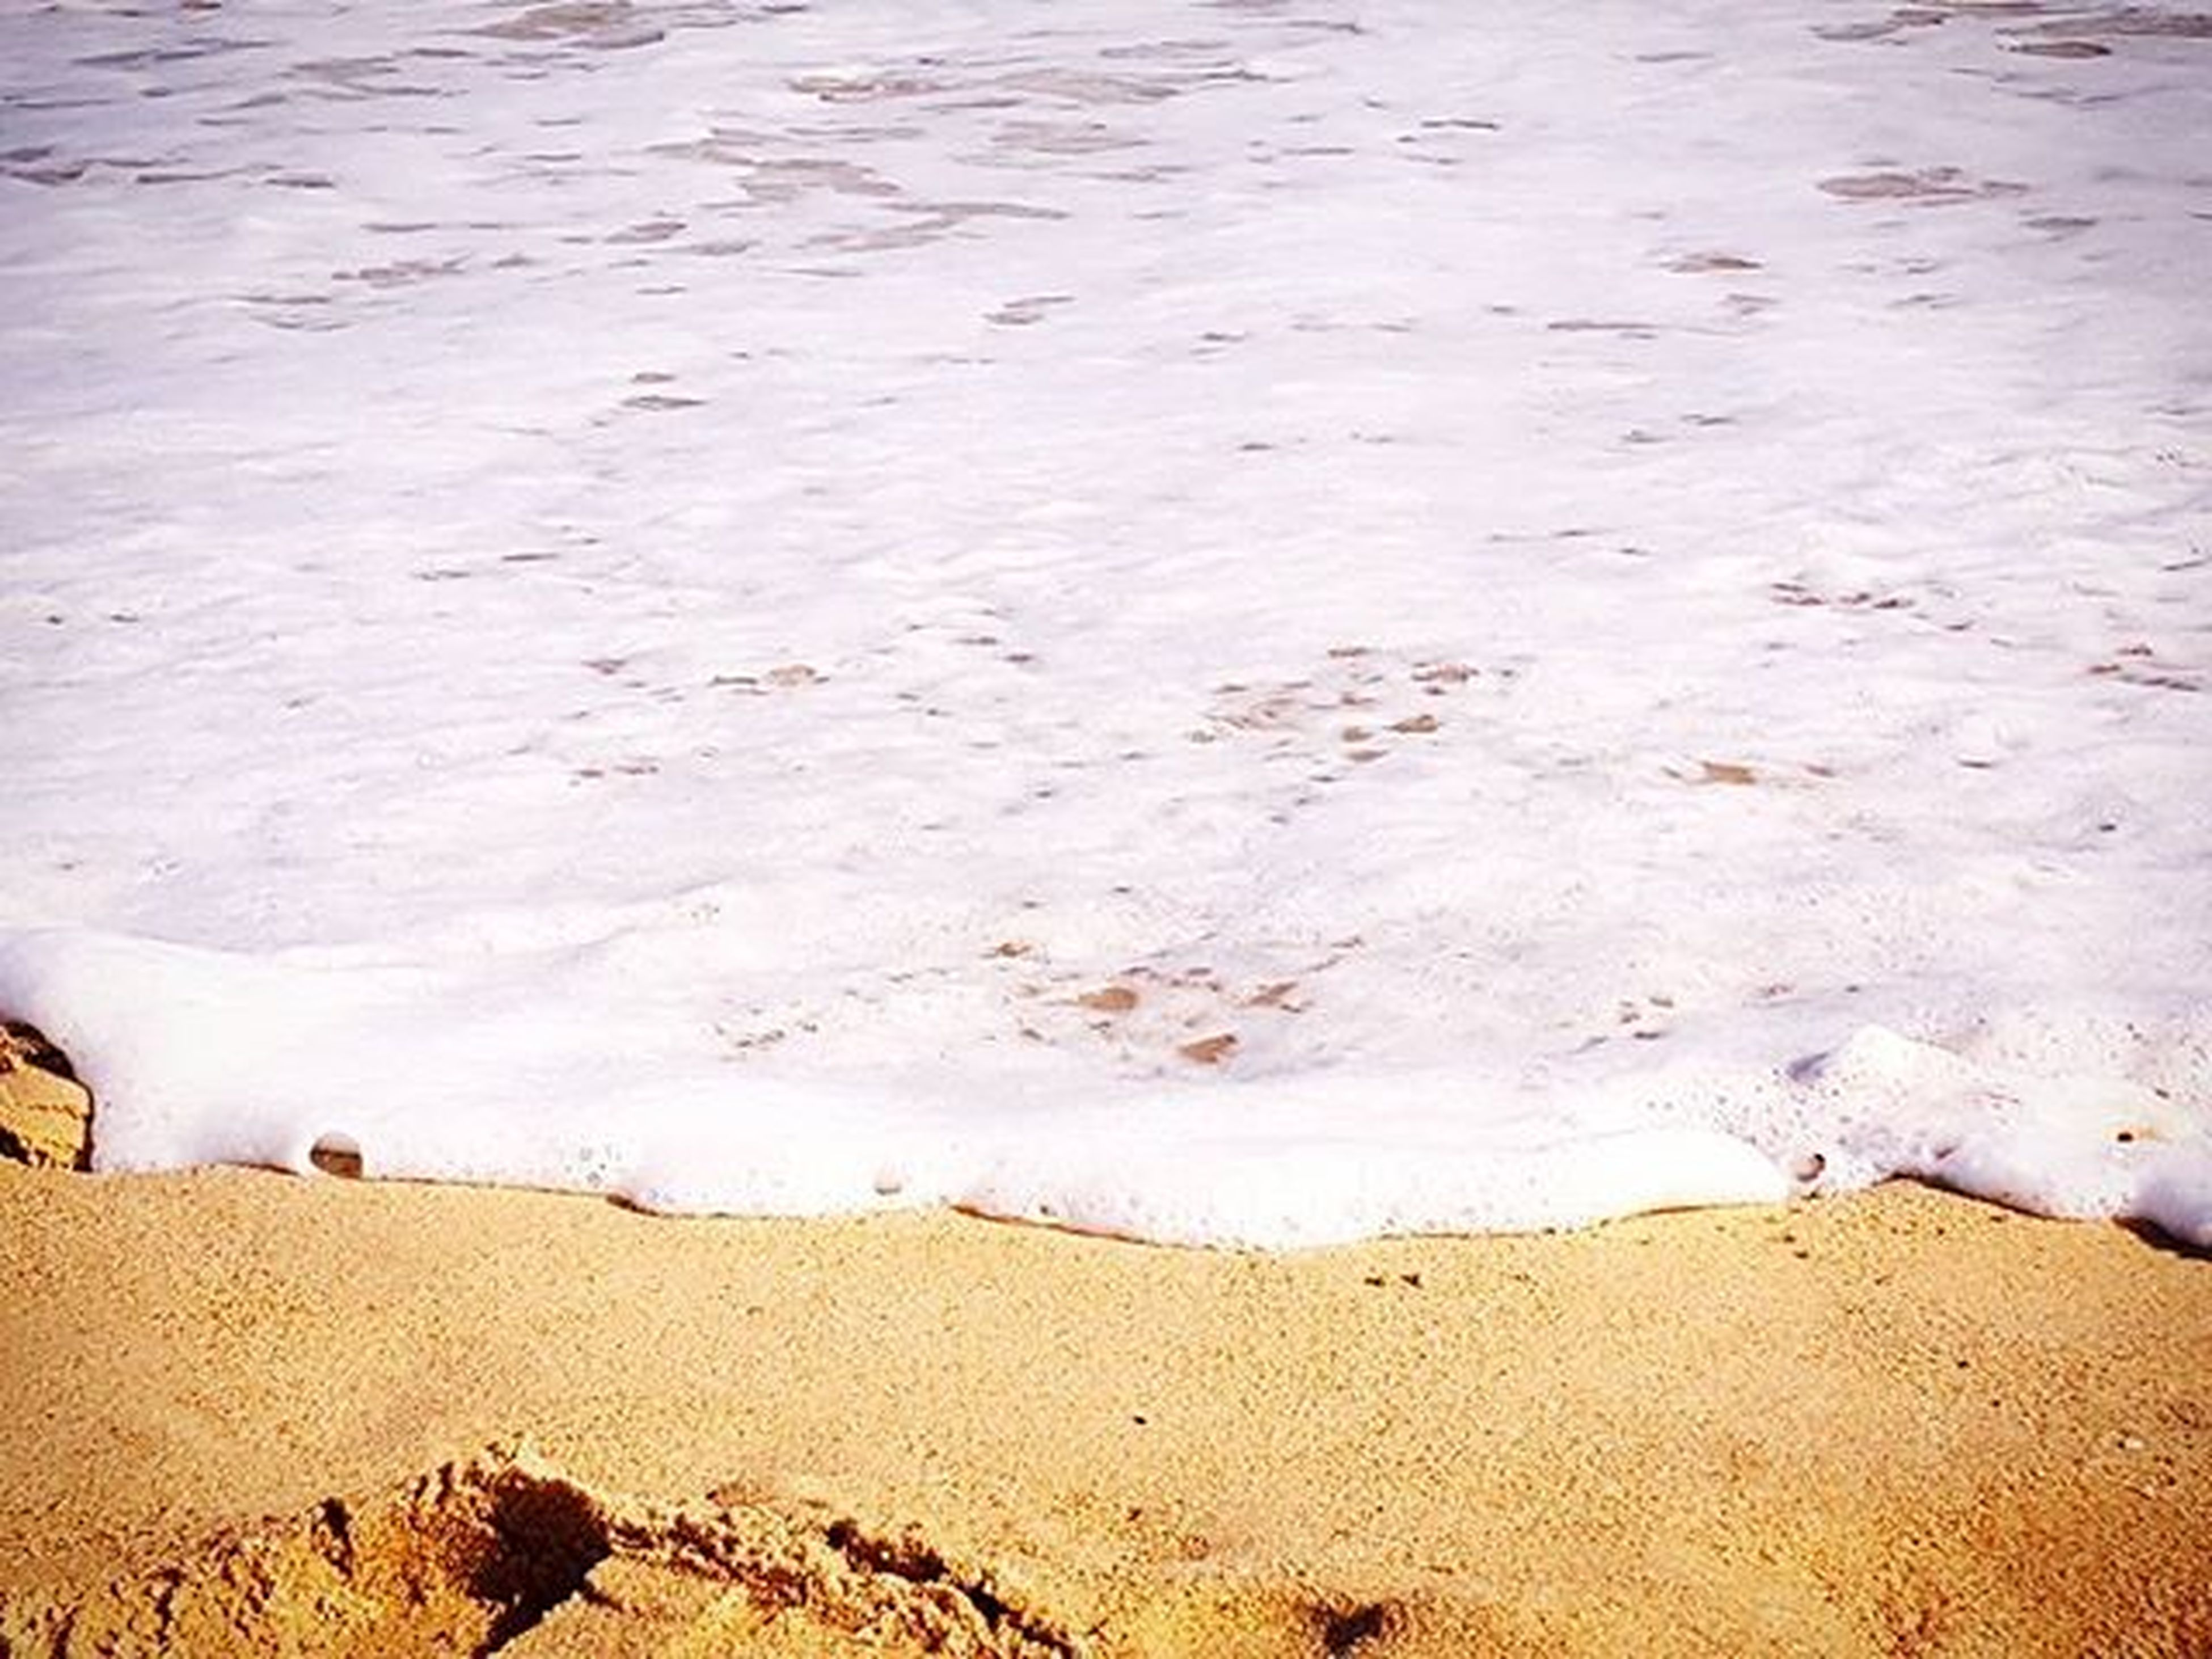 sand, beach, shore, footprint, tranquility, tranquil scene, sea, nature, desert, high angle view, sand dune, sunlight, sandy, beauty in nature, scenics, day, outdoors, vacations, coastline, water